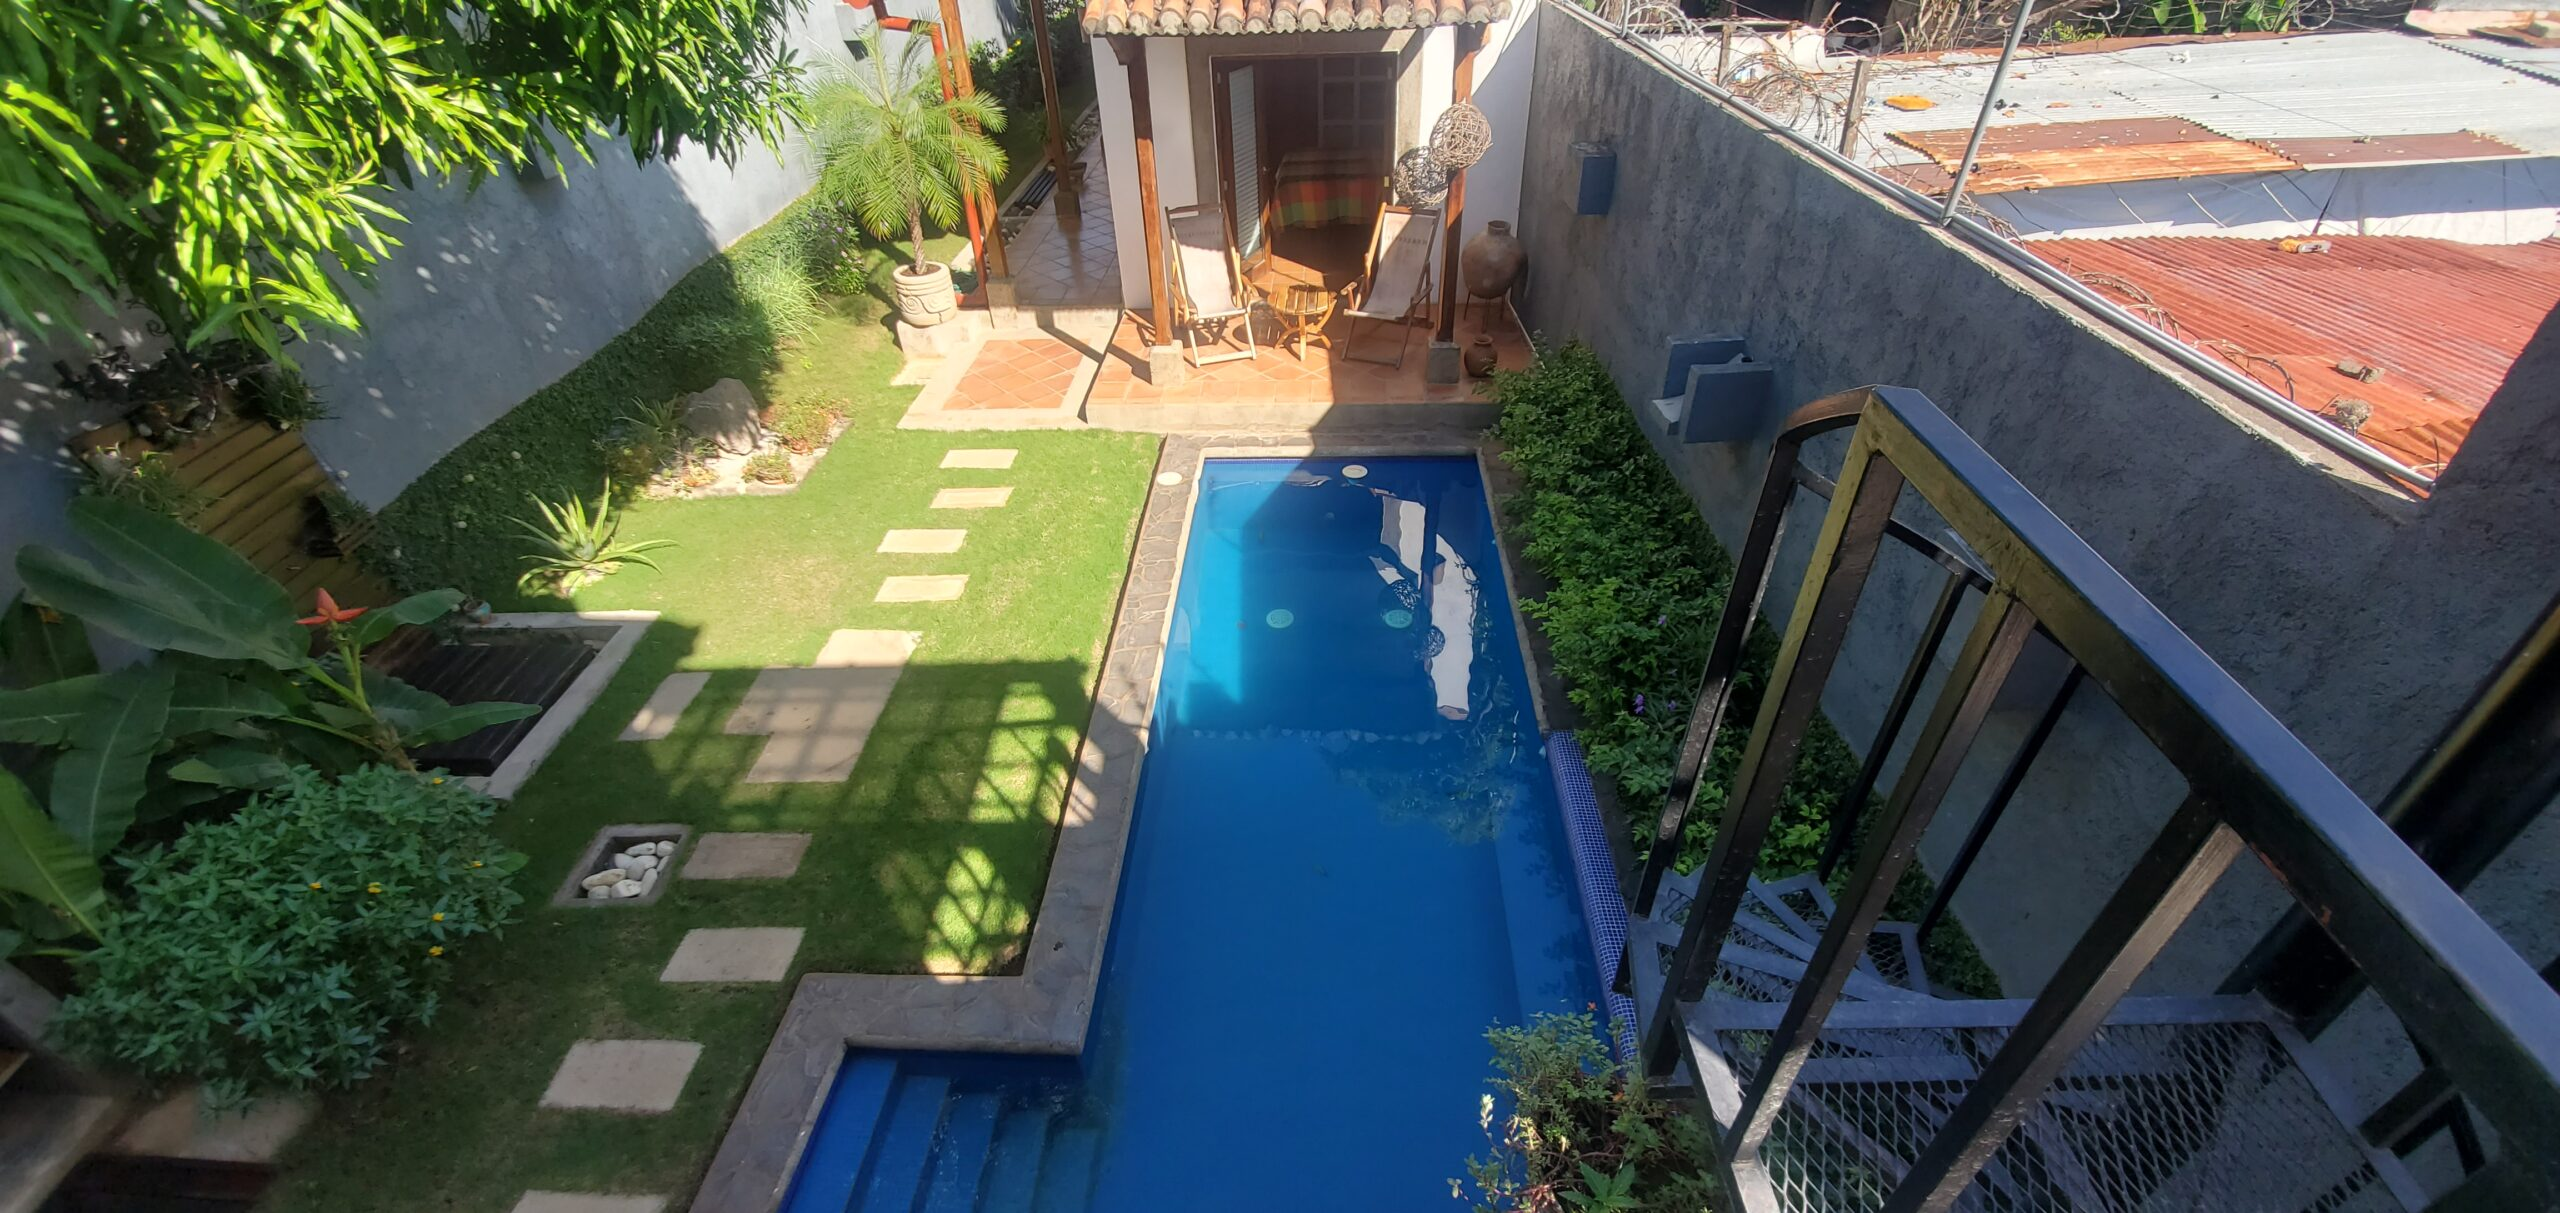 Nicaragua Real Estate 3 Bedroom, 3 Bathroom Home, with pool, rooftop and much more in The Gran Sultana, Granada,